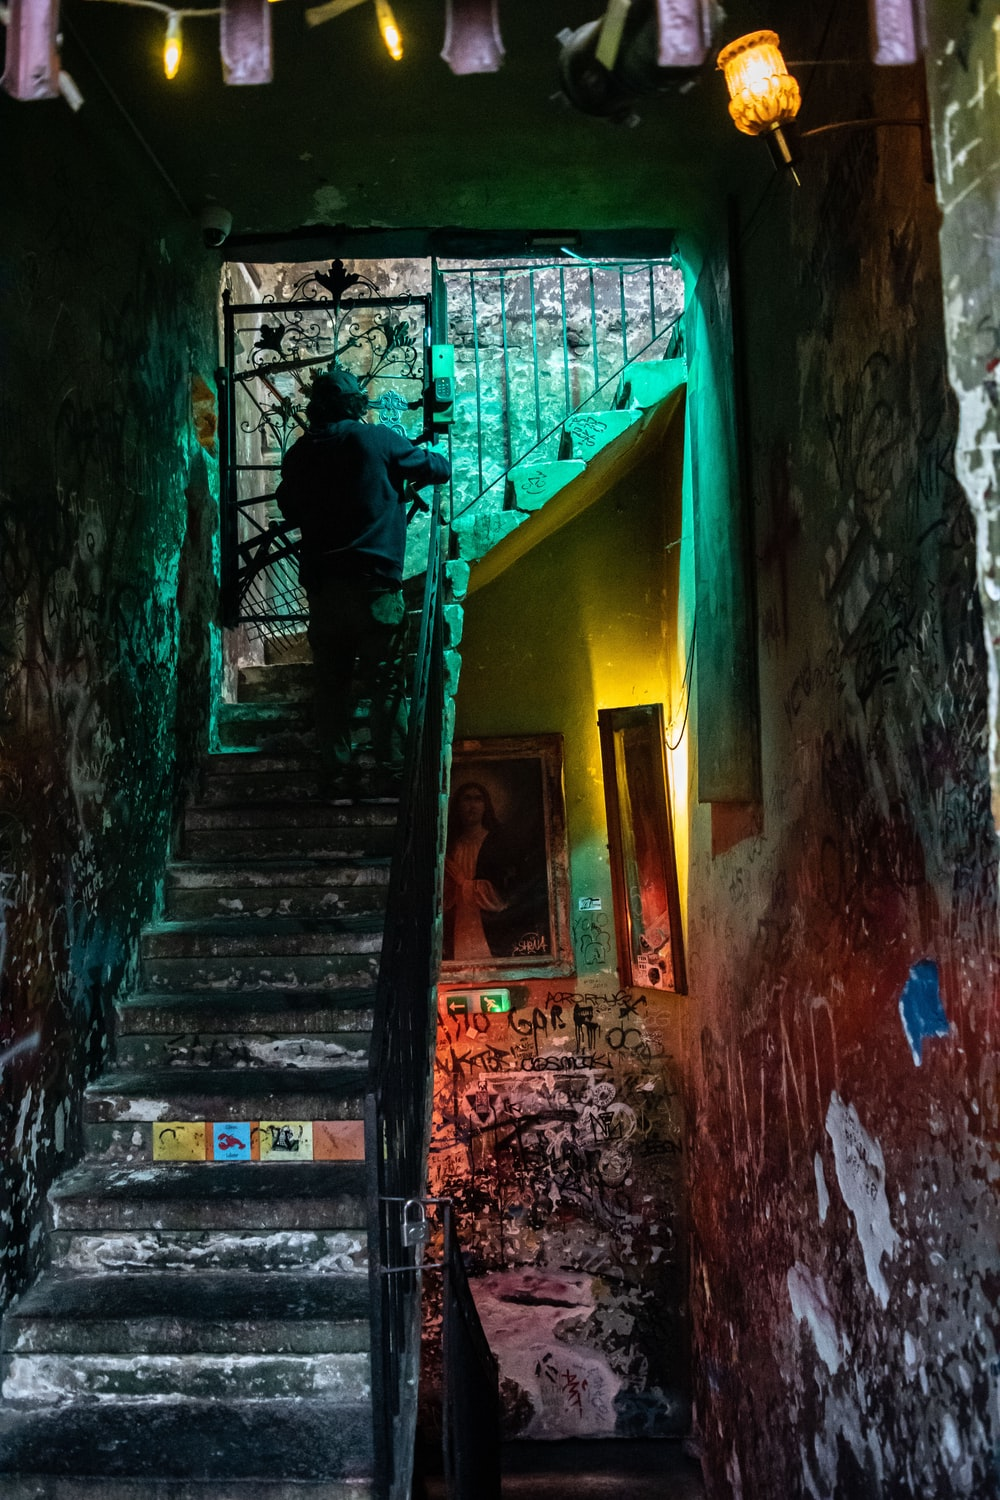 person at the staircase inside building